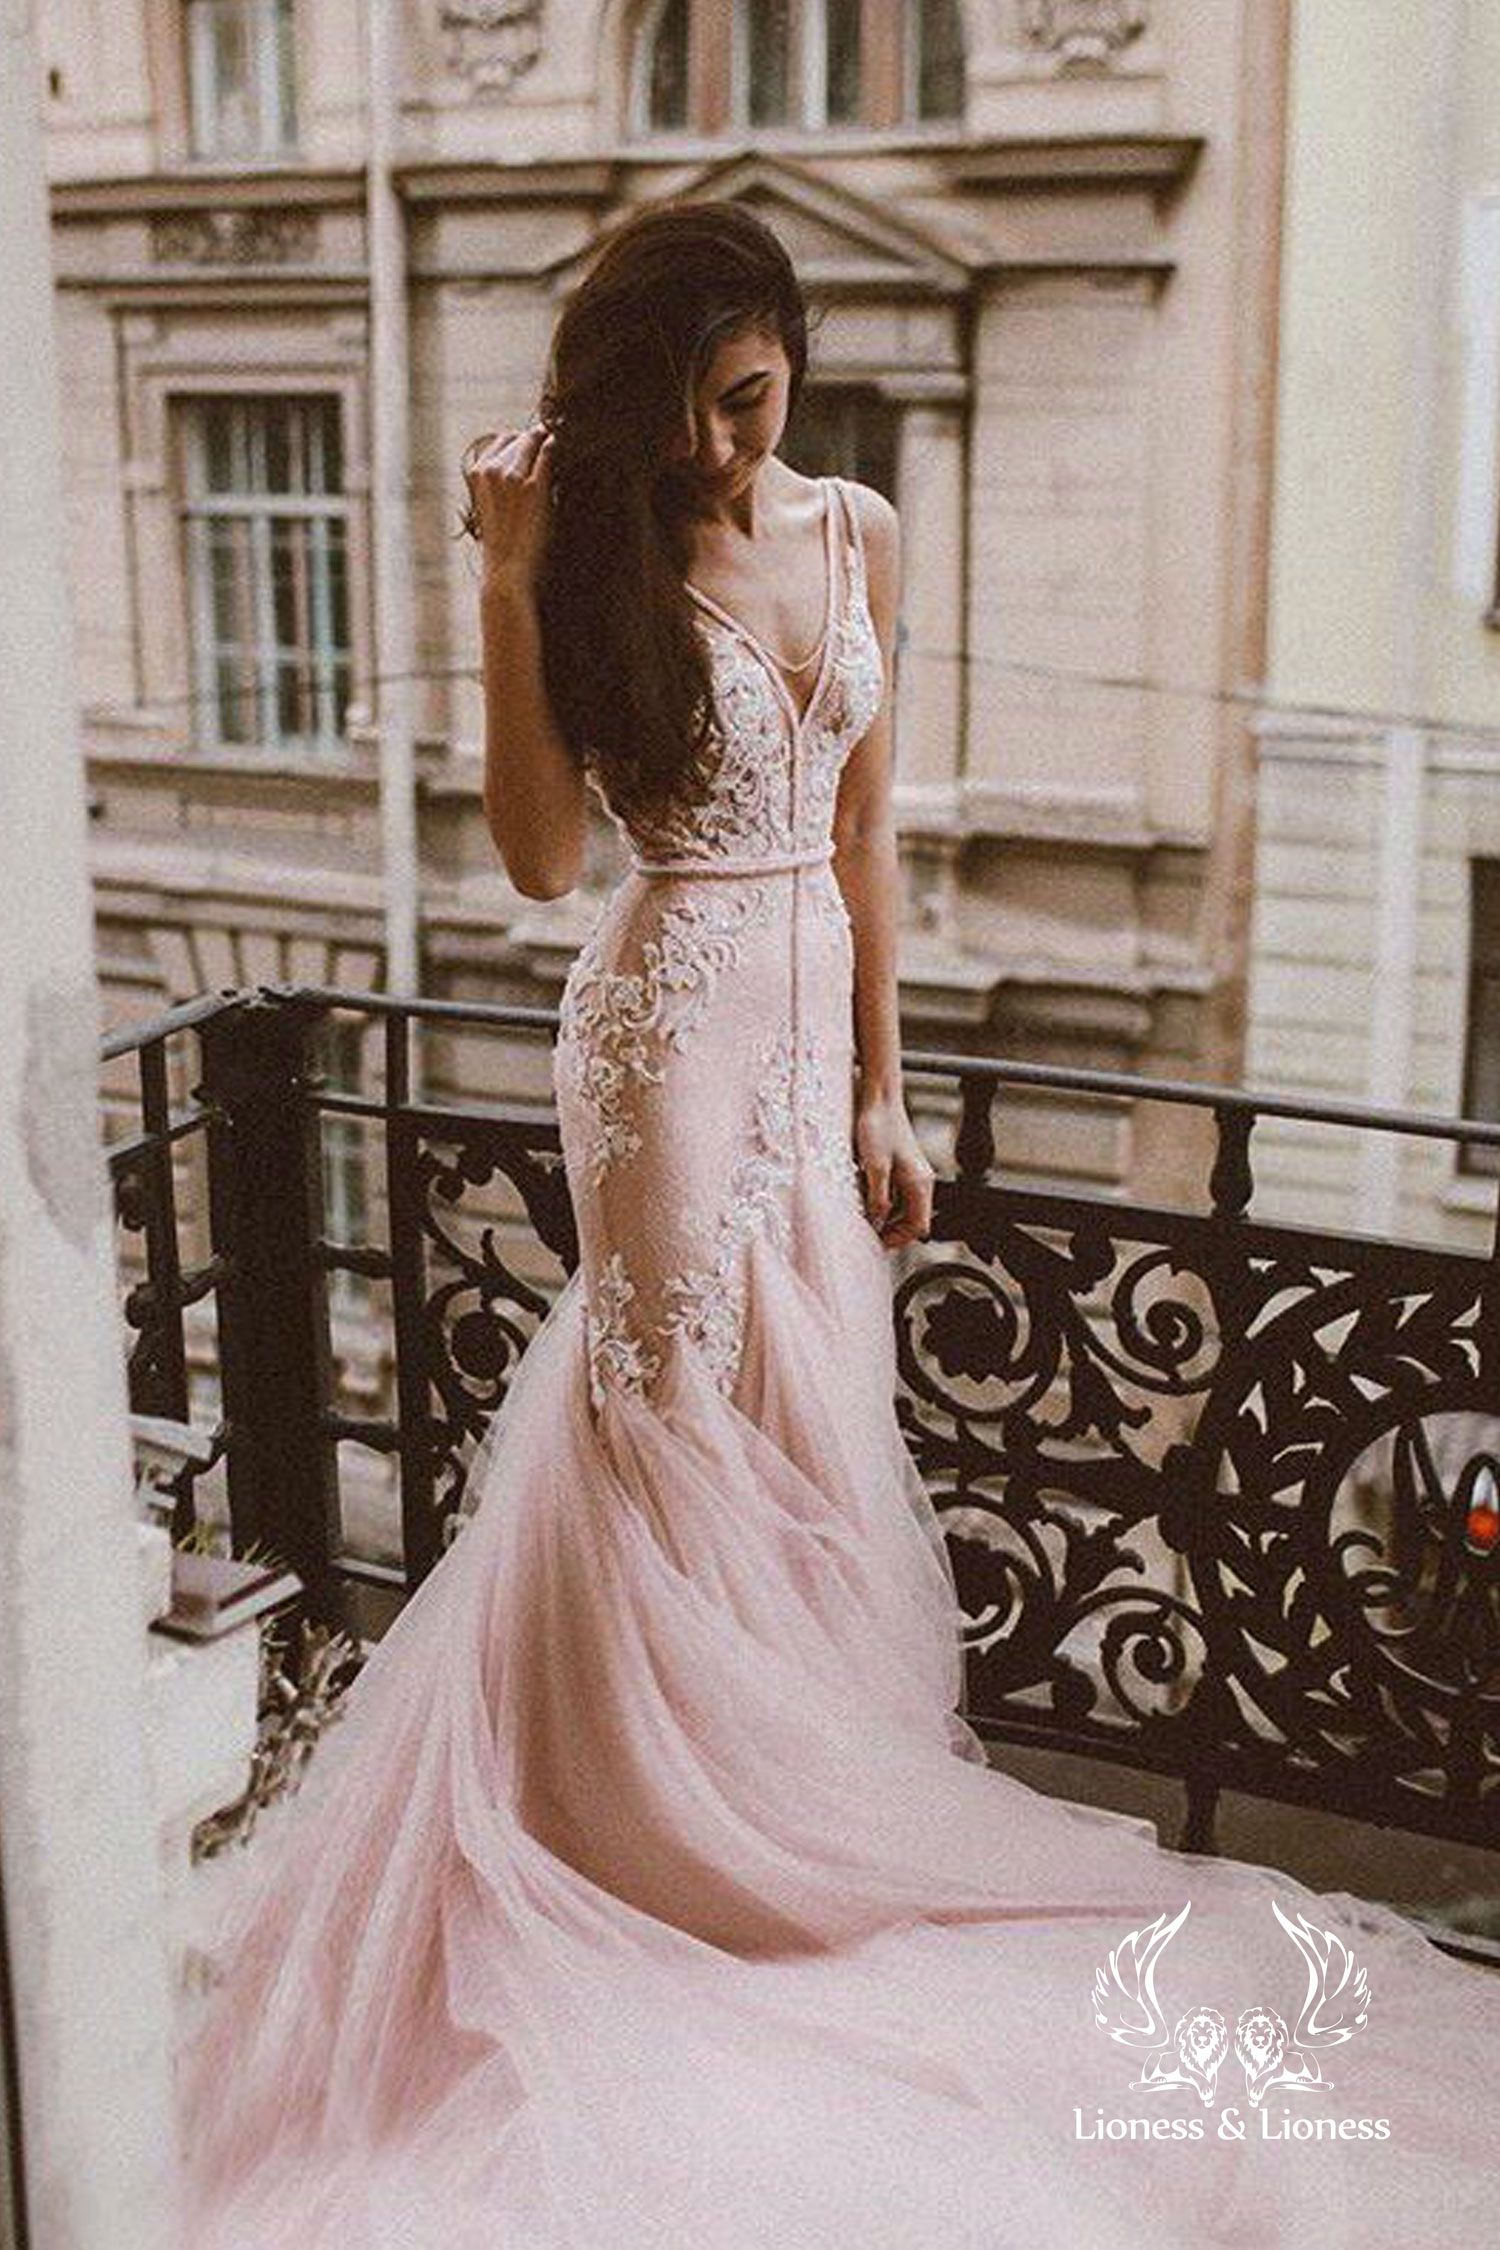 Pink Blush Lace Wedding Dress Mermaid Fluffy Removable Tulle Skirt Mermaid Hand Embroidery Lace Deep V Back Lace Deep V Neck Rosali Blush Wedding Dress Lace Top Wedding Dresses Pink Wedding Dress Mermaid [ 2250 x 1500 Pixel ]